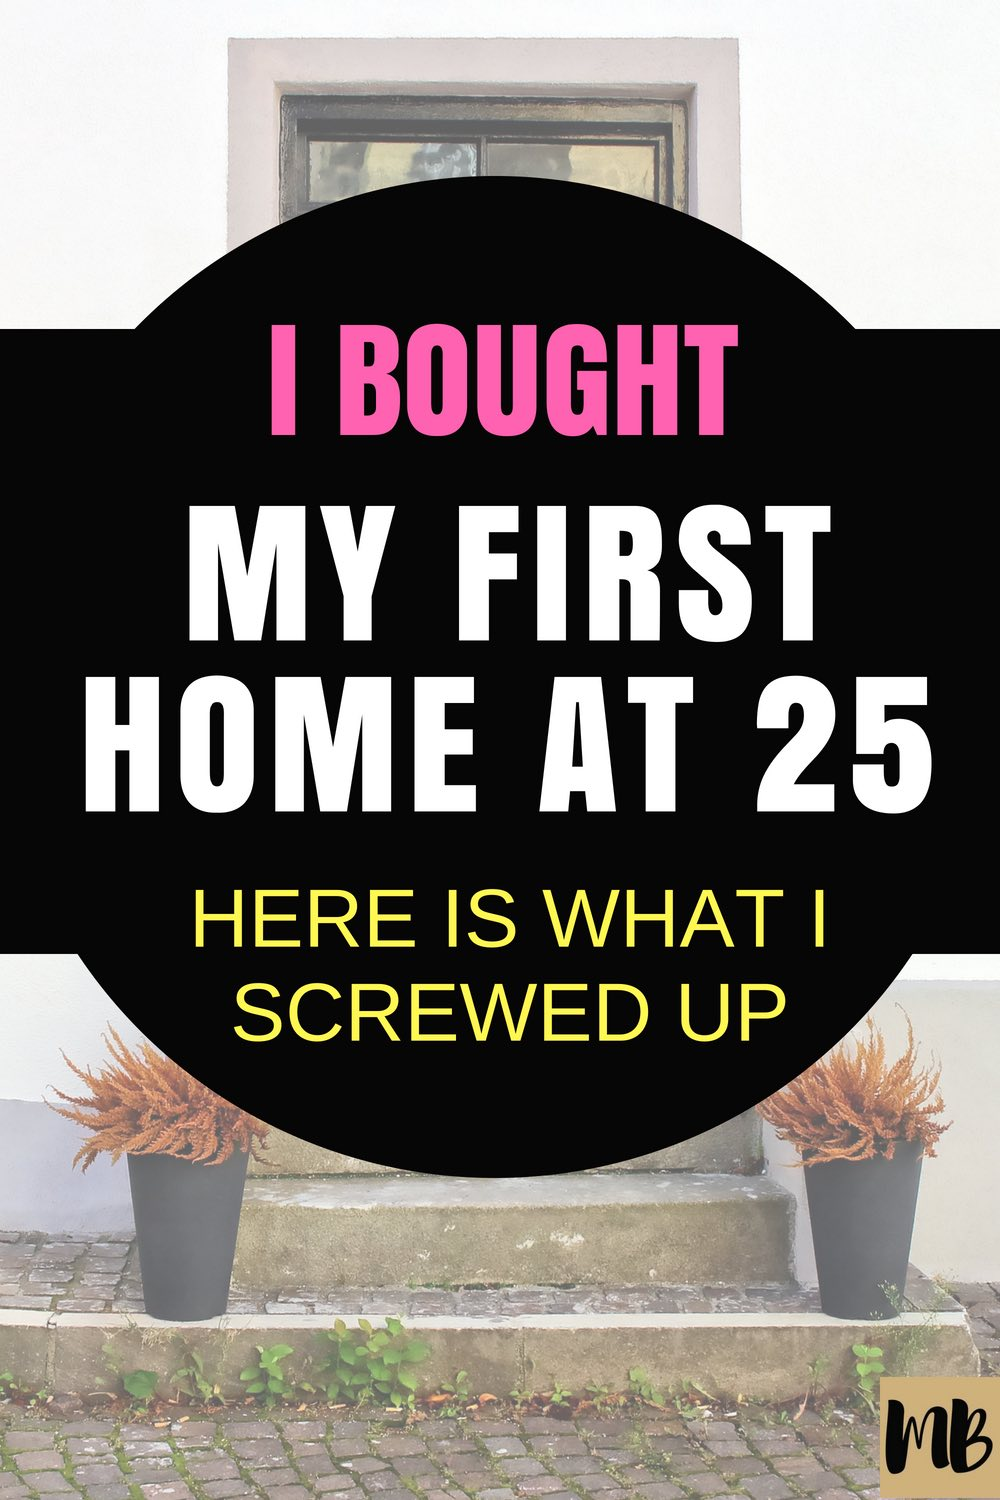 dcd81b4566d 10 Lessons I Learned After I Bought My First Home  firsttimehomebuyer   homebuyingtips  homebuying